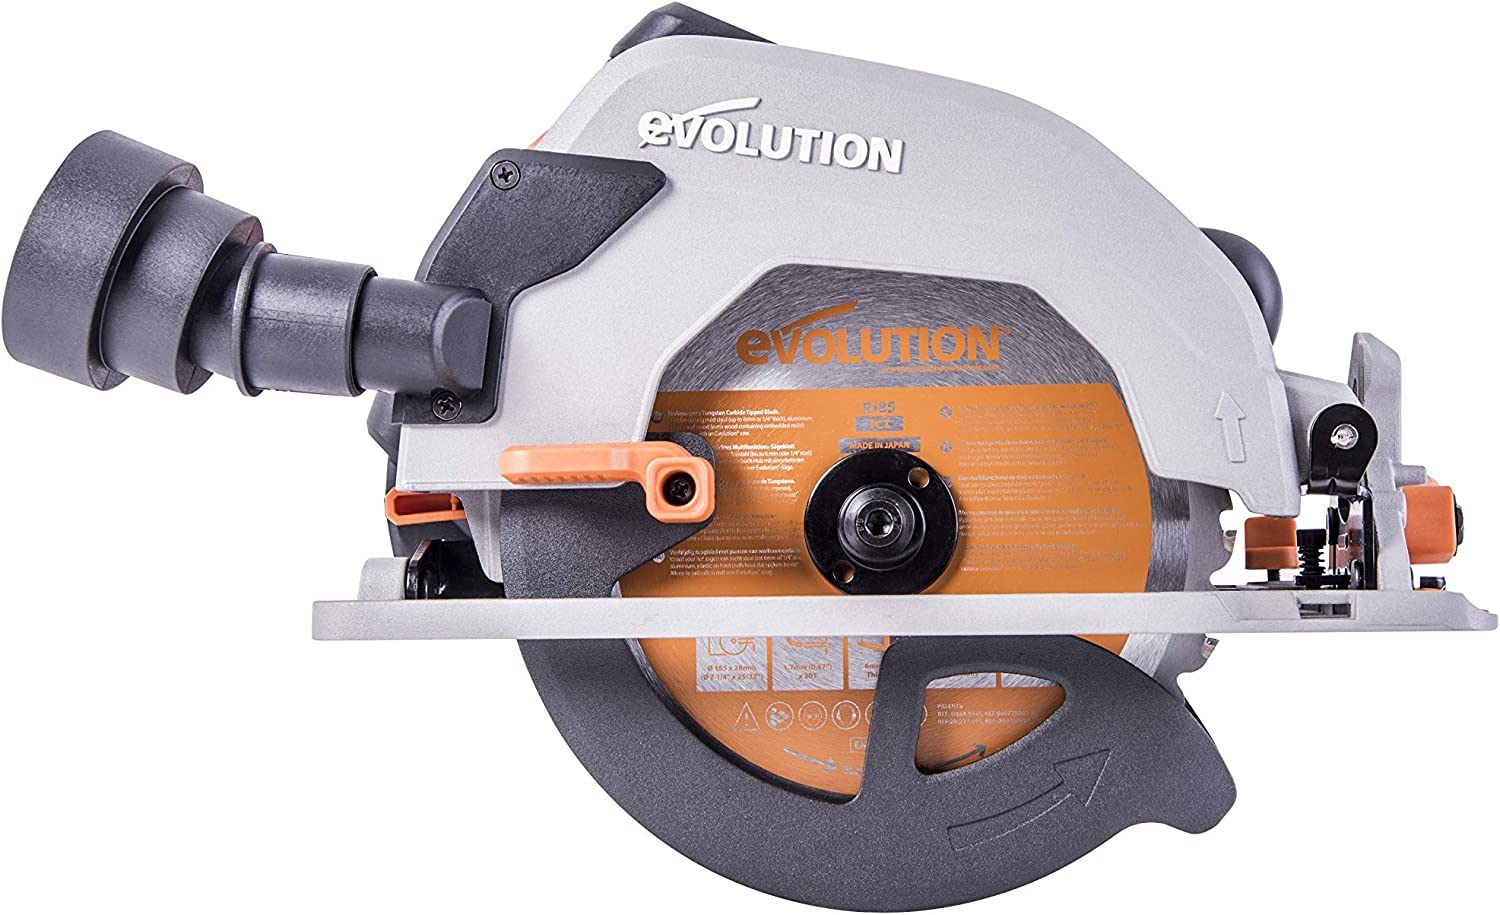 Evolution Power Tools R185CCS 7-1 4 TCT Multi-Material Cutting Circular Saw, 7-1 4 , Orange